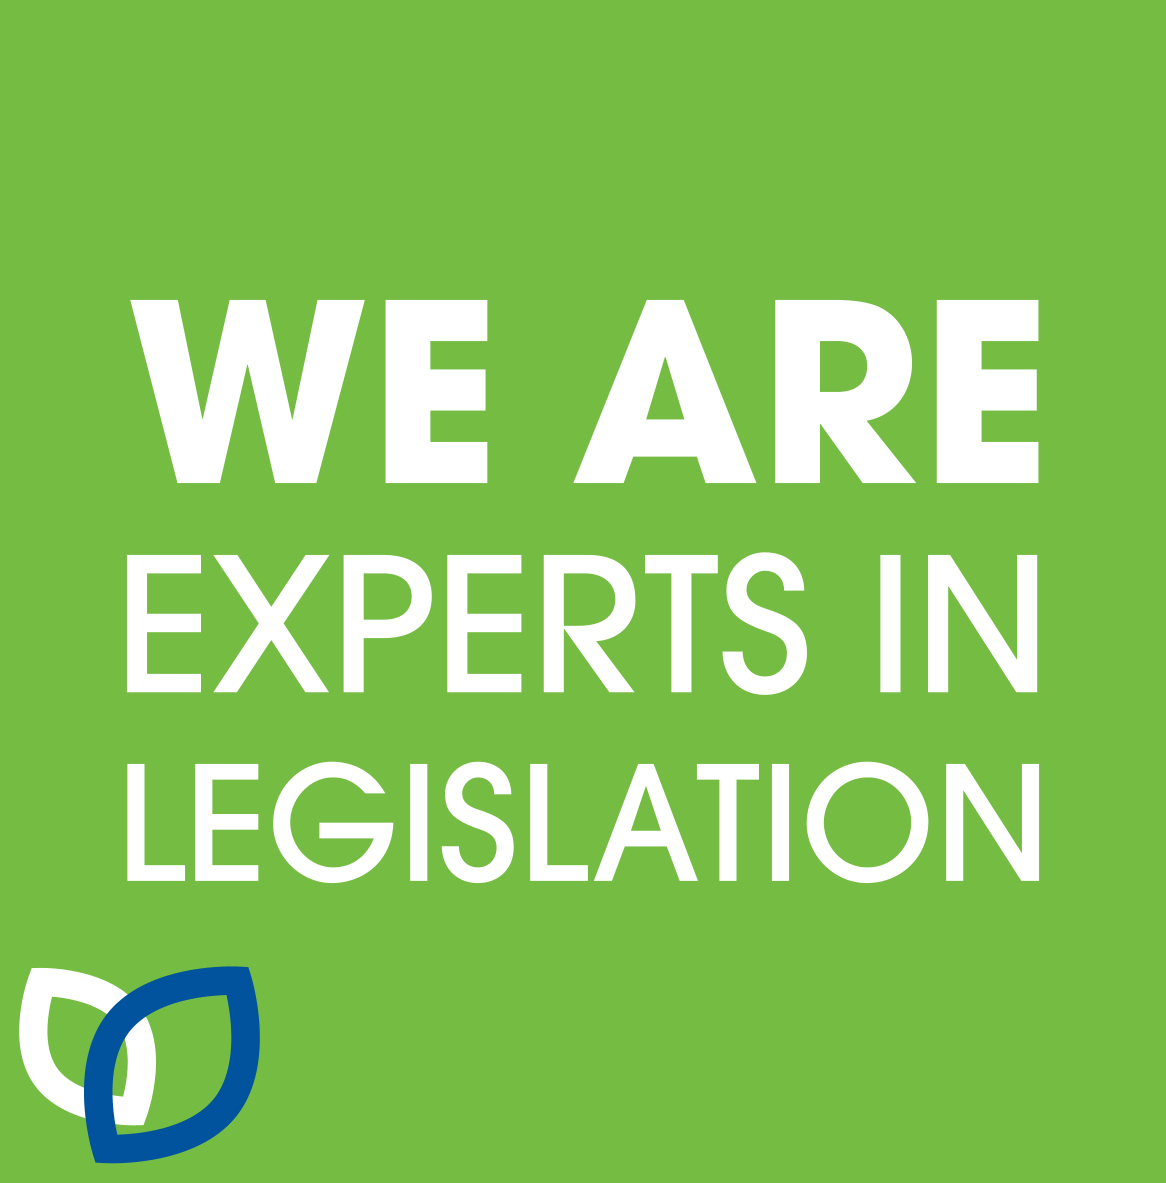 We are experts in legislation - dental services